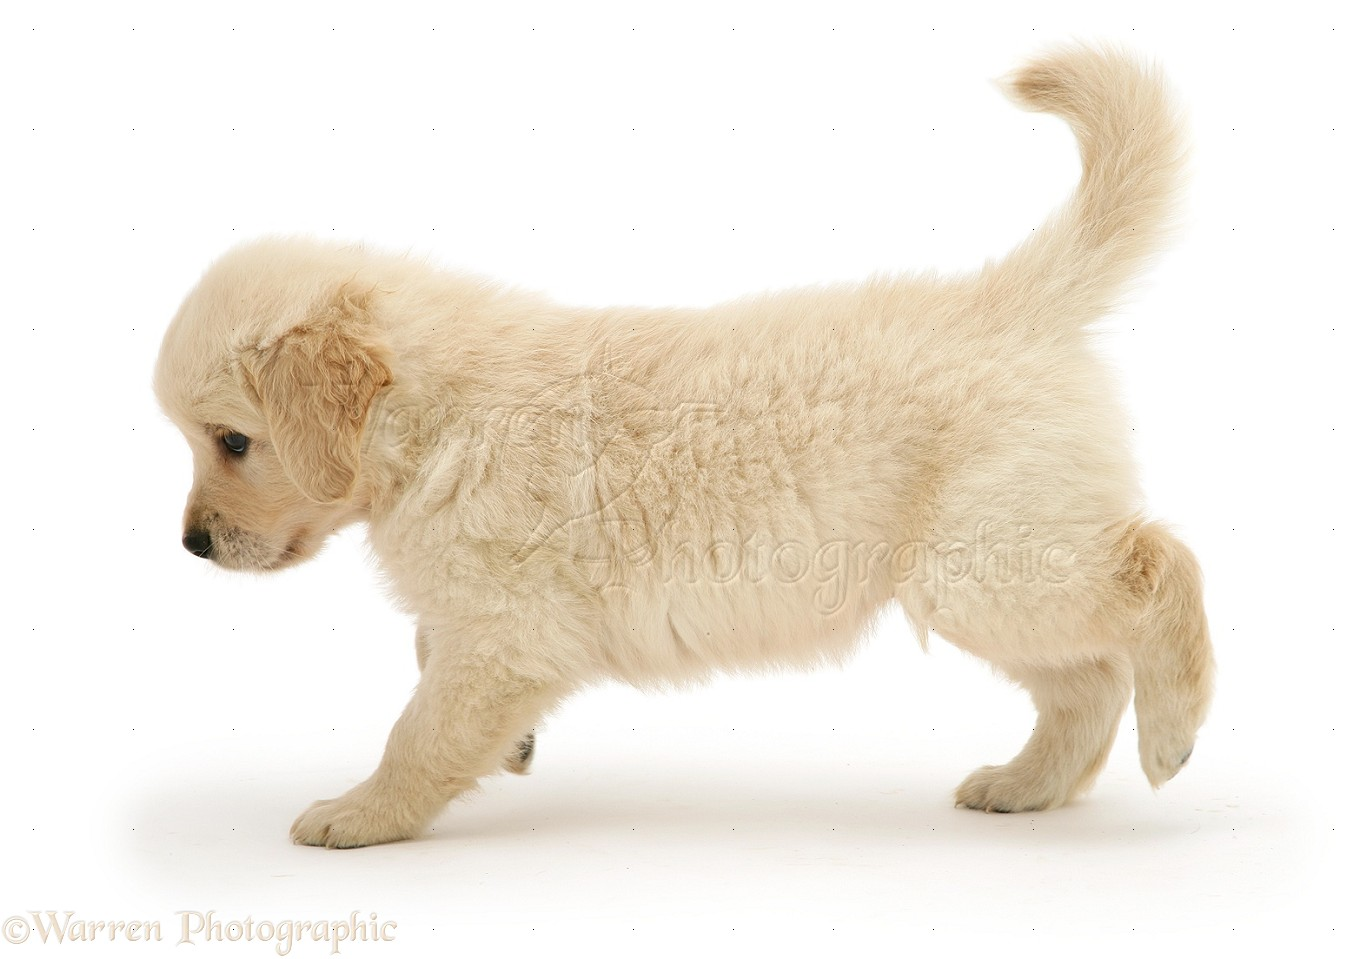 Teddy Bear Puppies and Dogs